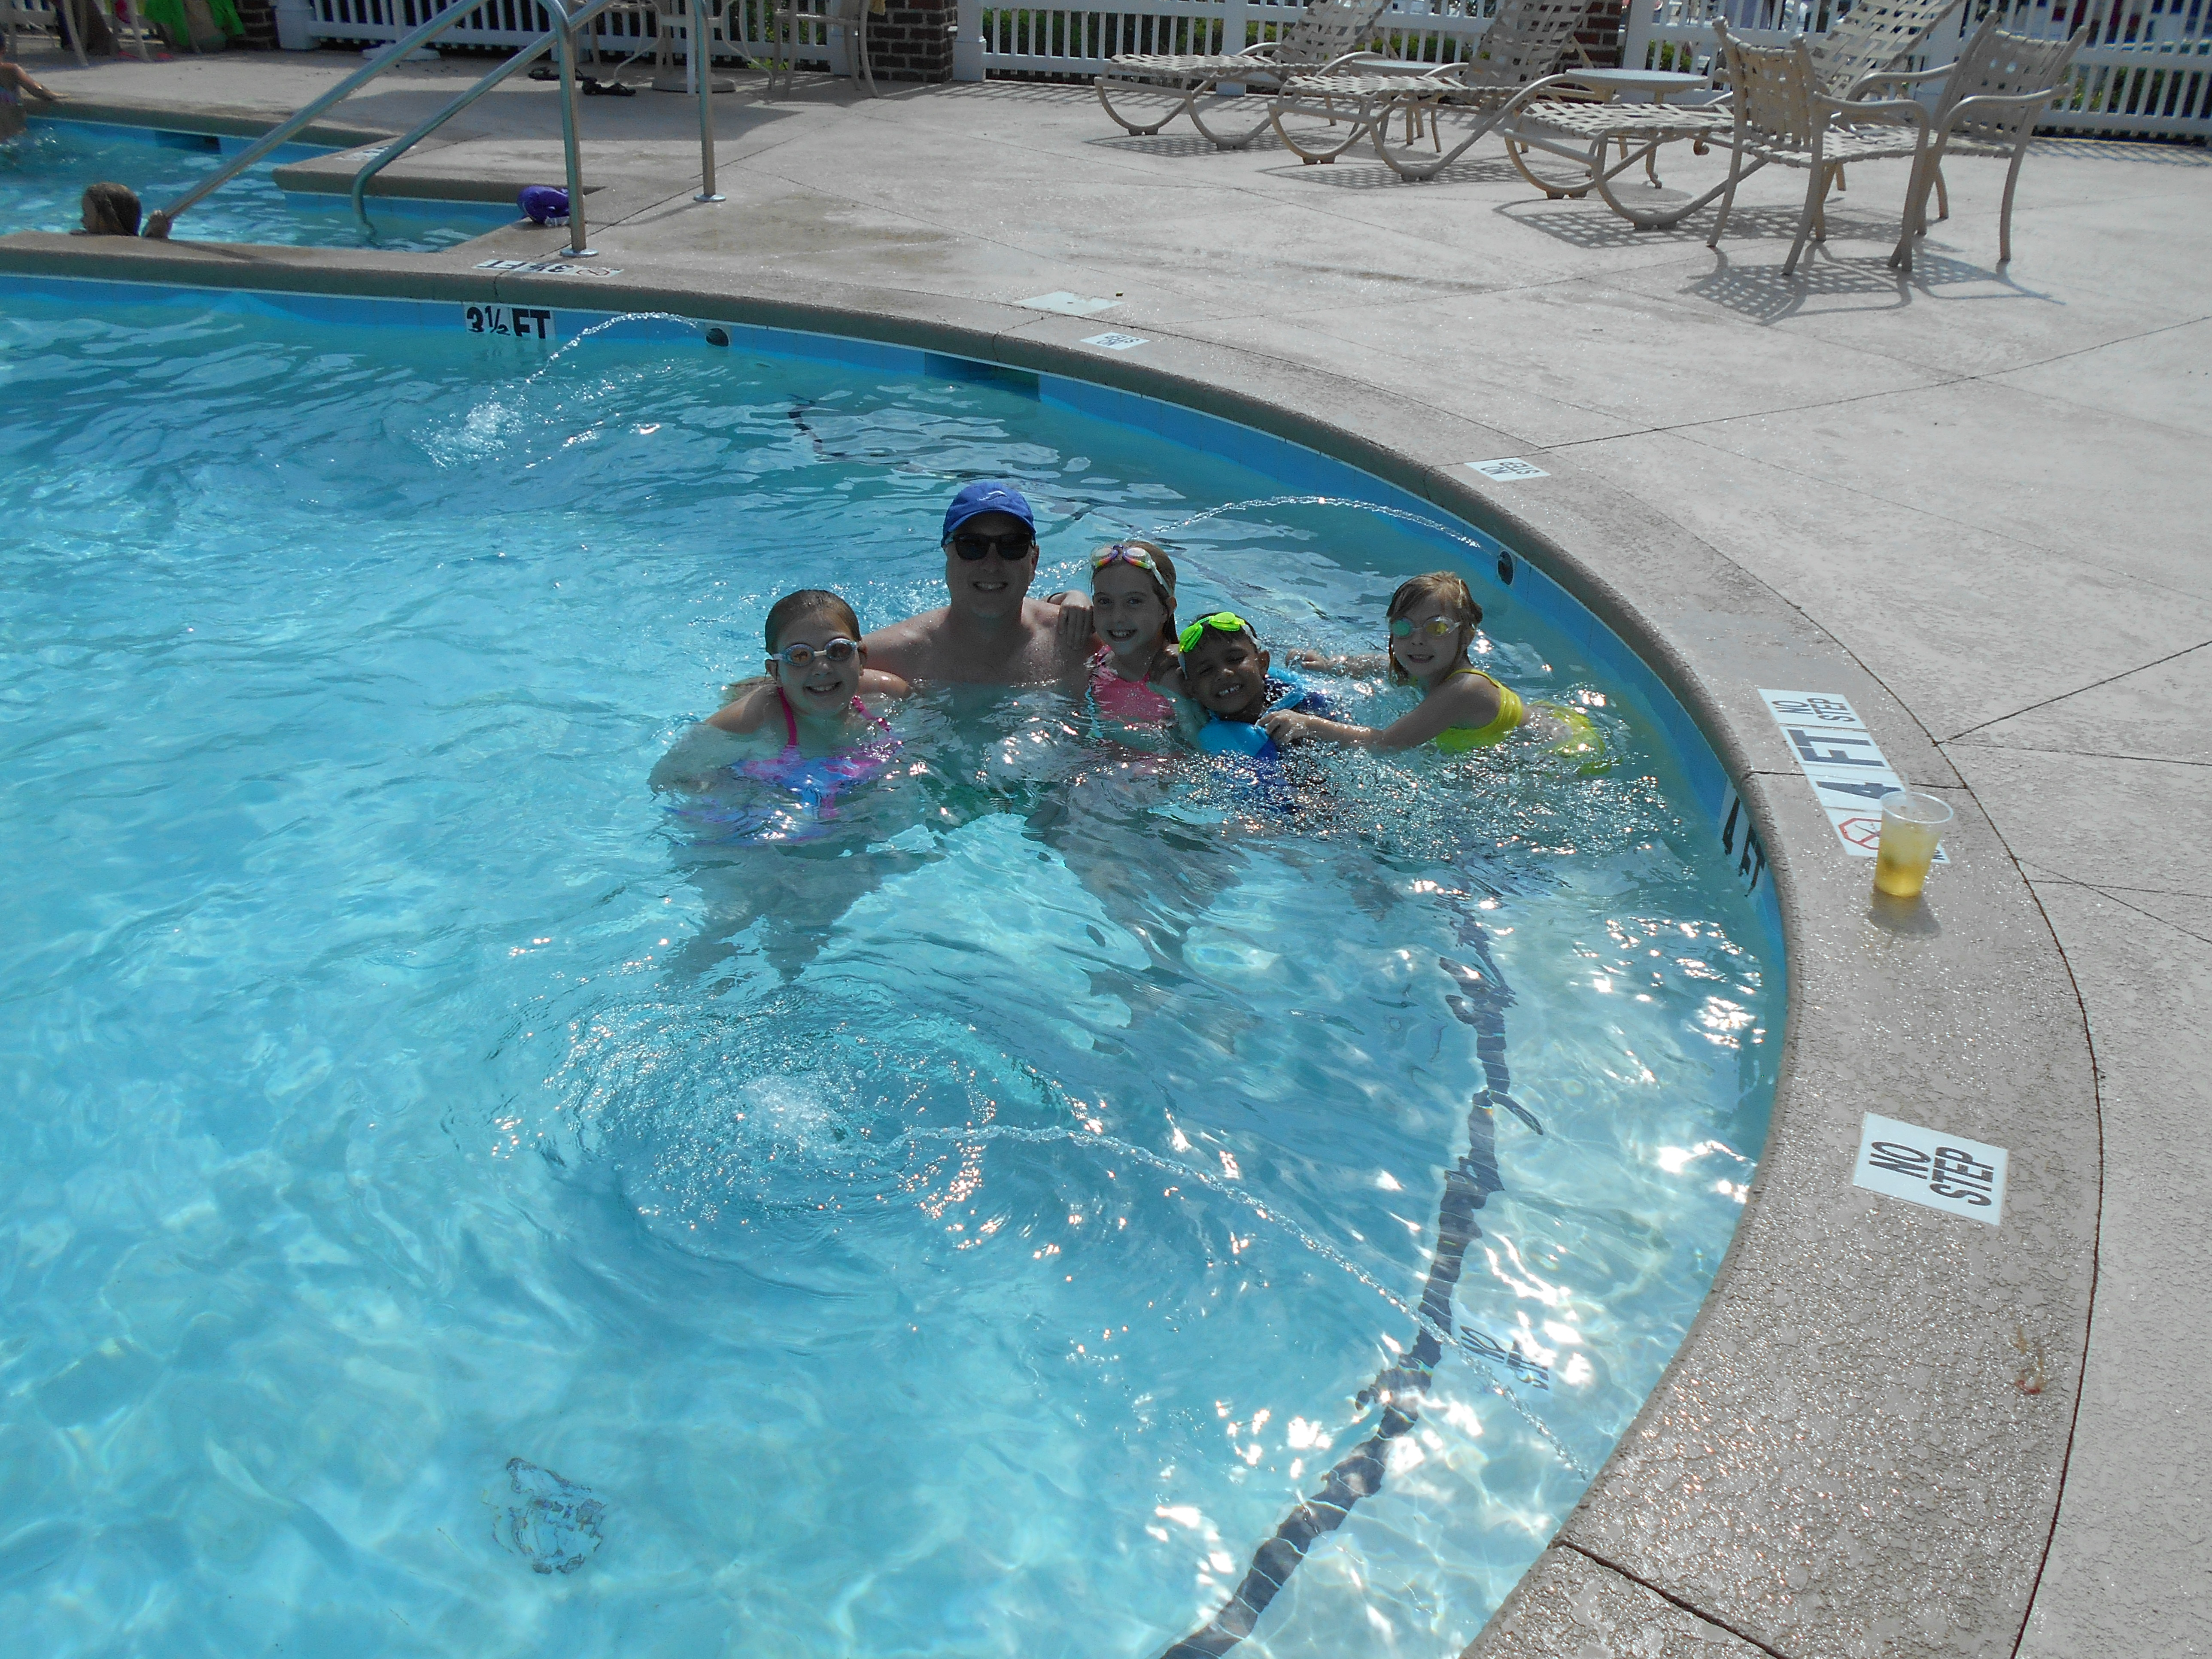 Family in pool at Reserve Harbor Yacht Club